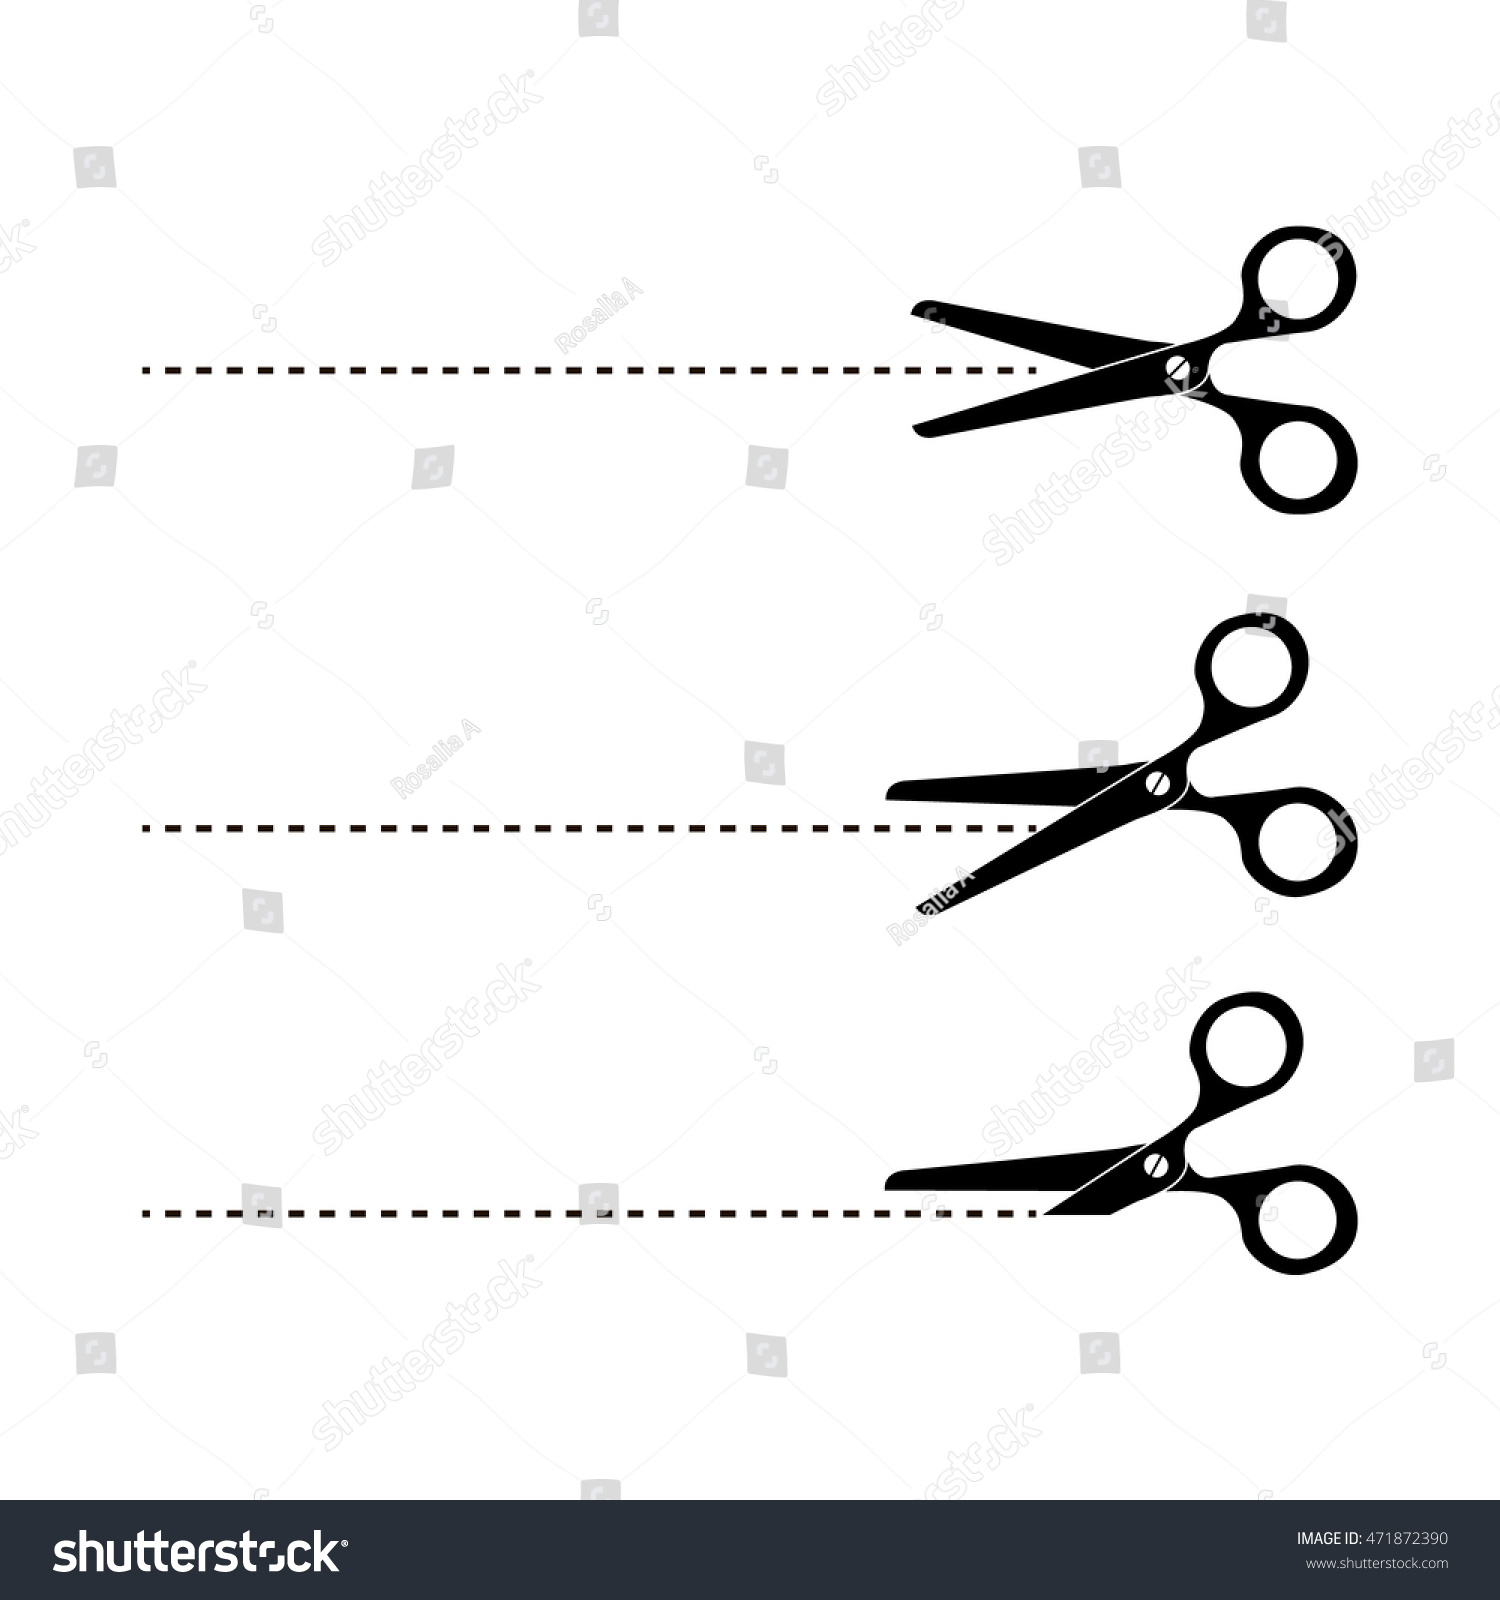 Cut here symbol scissors dotted line stock vector 471872390 cut here symbol scissors and dotted line cut here scissors biocorpaavc